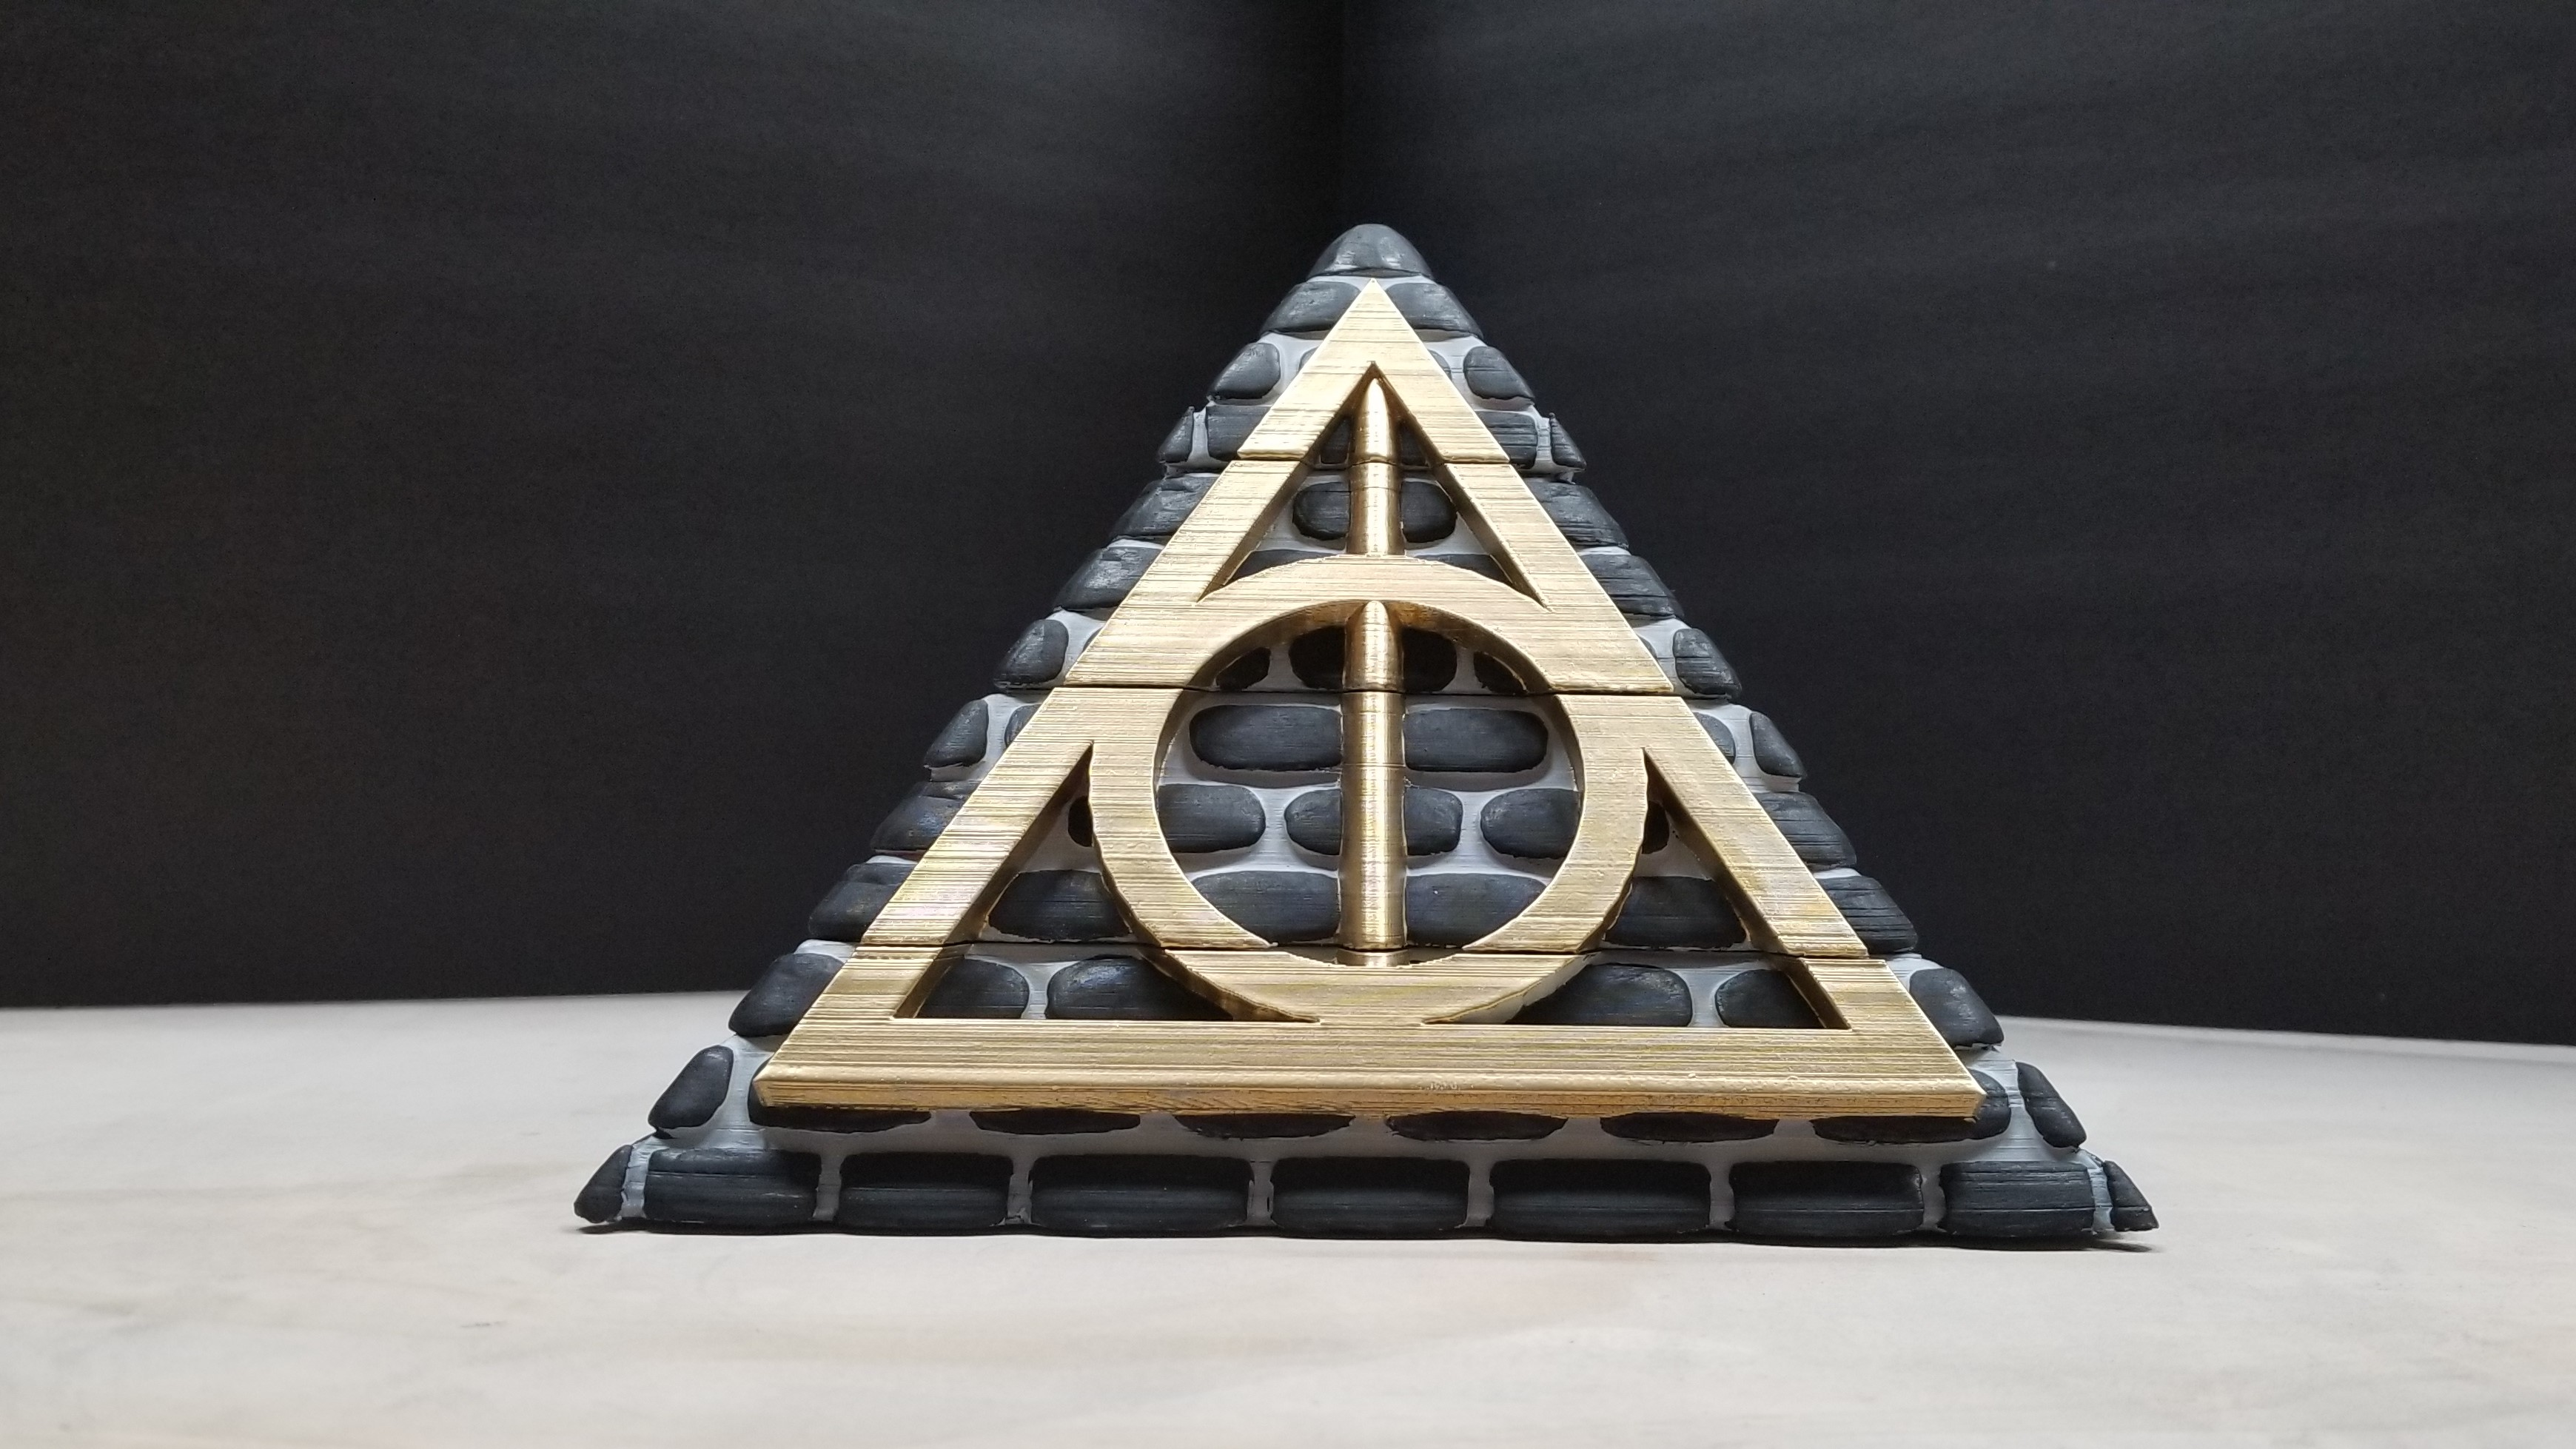 good.jpg Download free STL file POTTER PYRAMID BOX with a Chamber of secrets • Template to 3D print, LittleTup